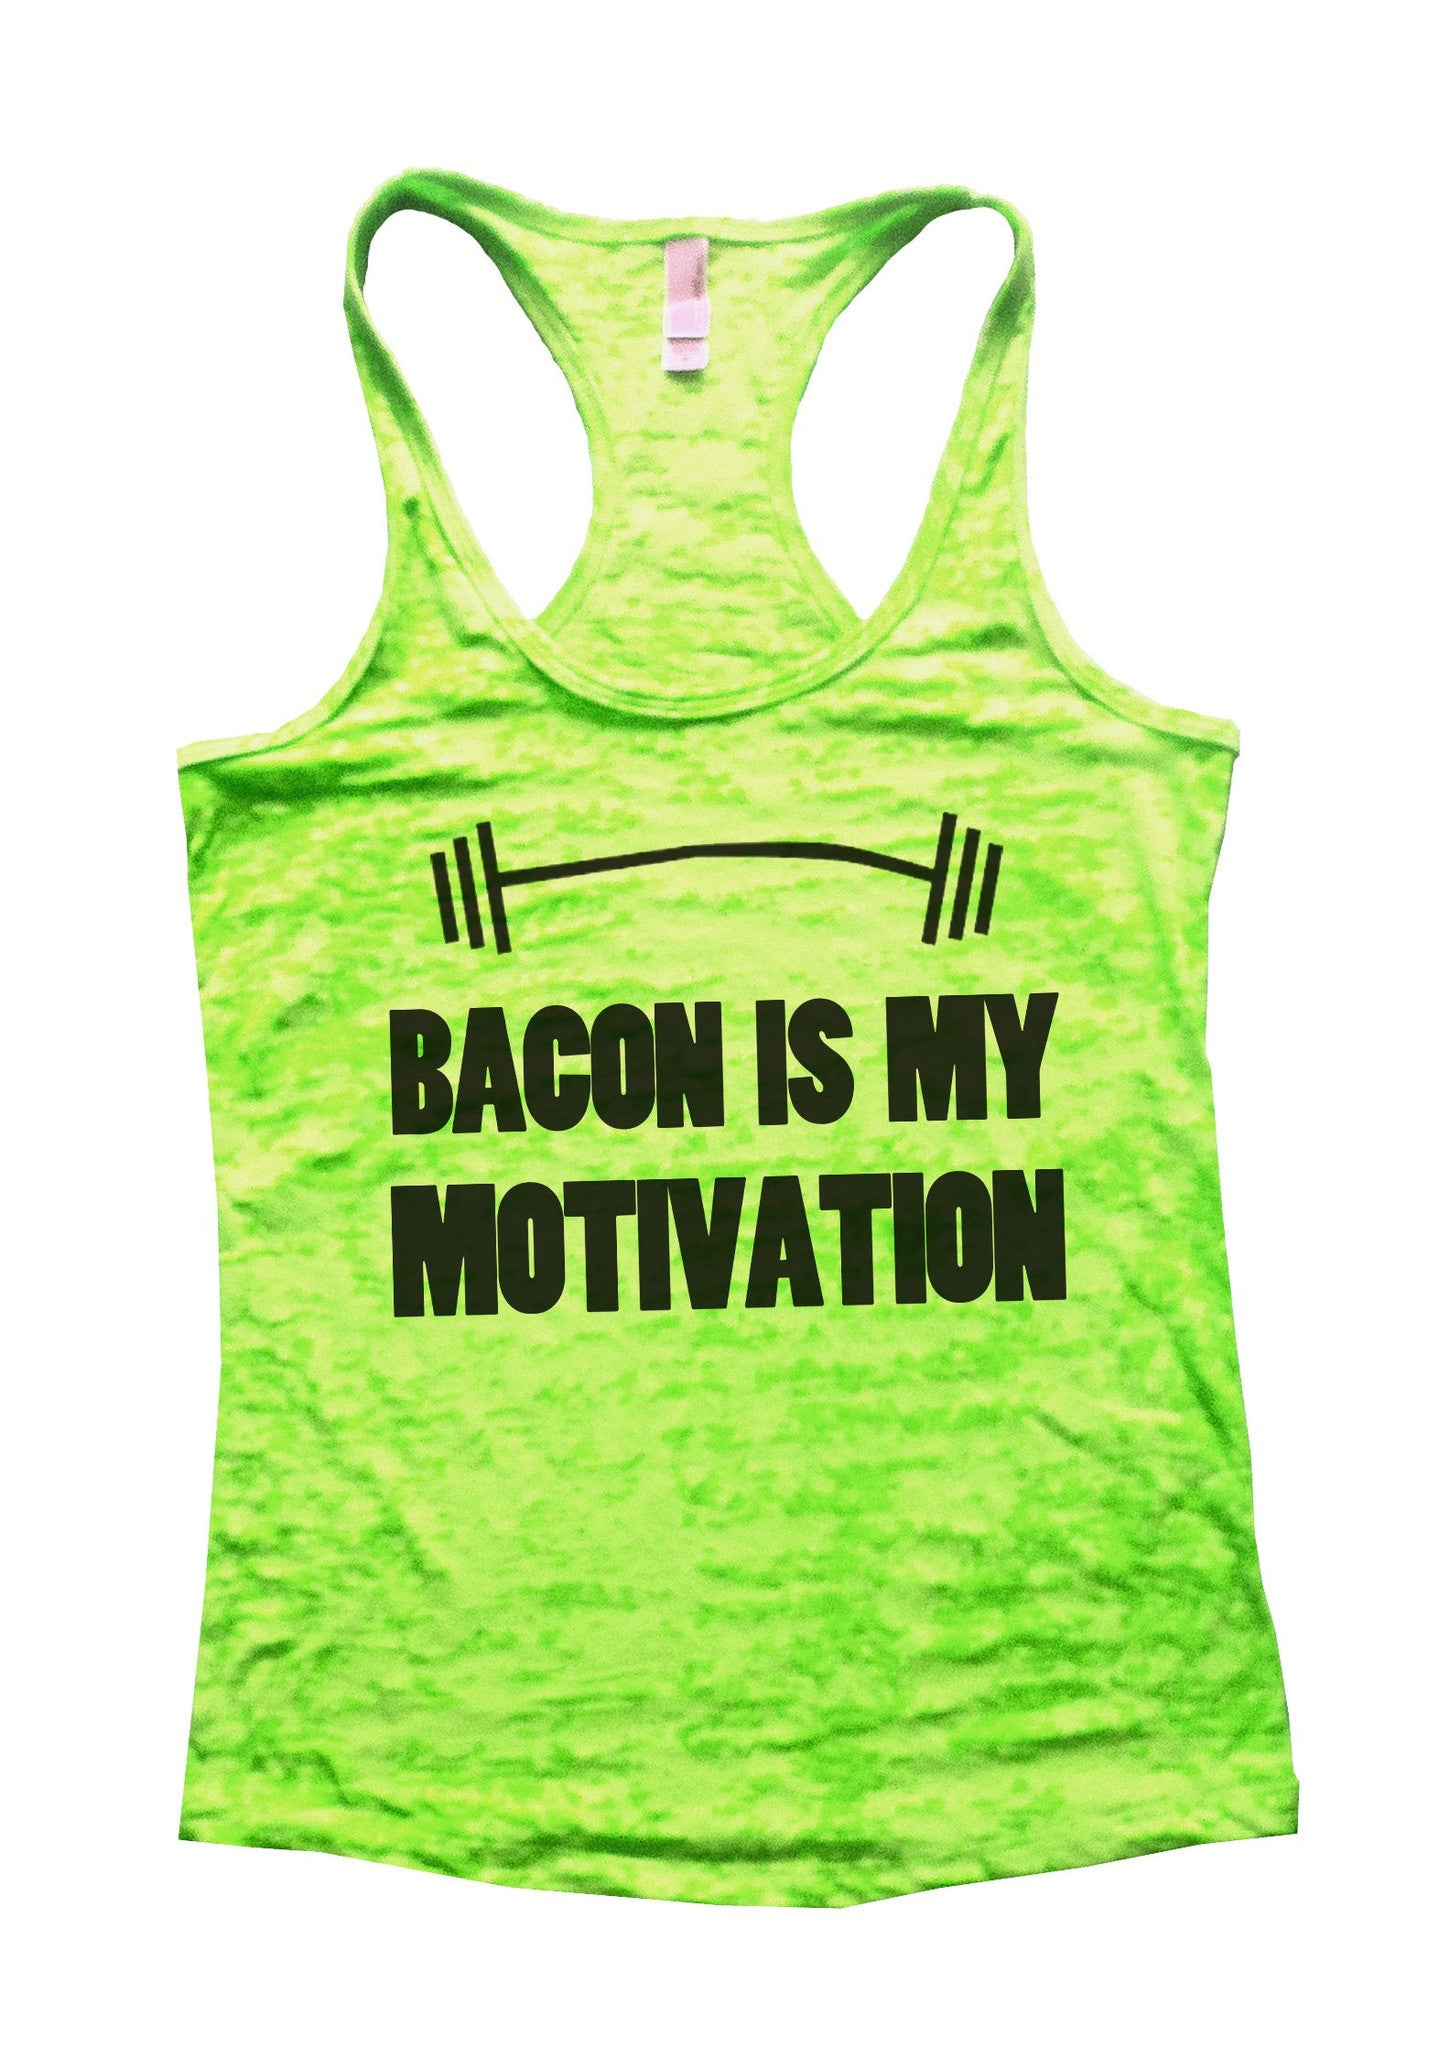 Bacon Is My Motivation Burnout Tank Top By BurnoutTankTops.com - 740 - Funny Shirts Tank Tops Burnouts and Triblends  - 2